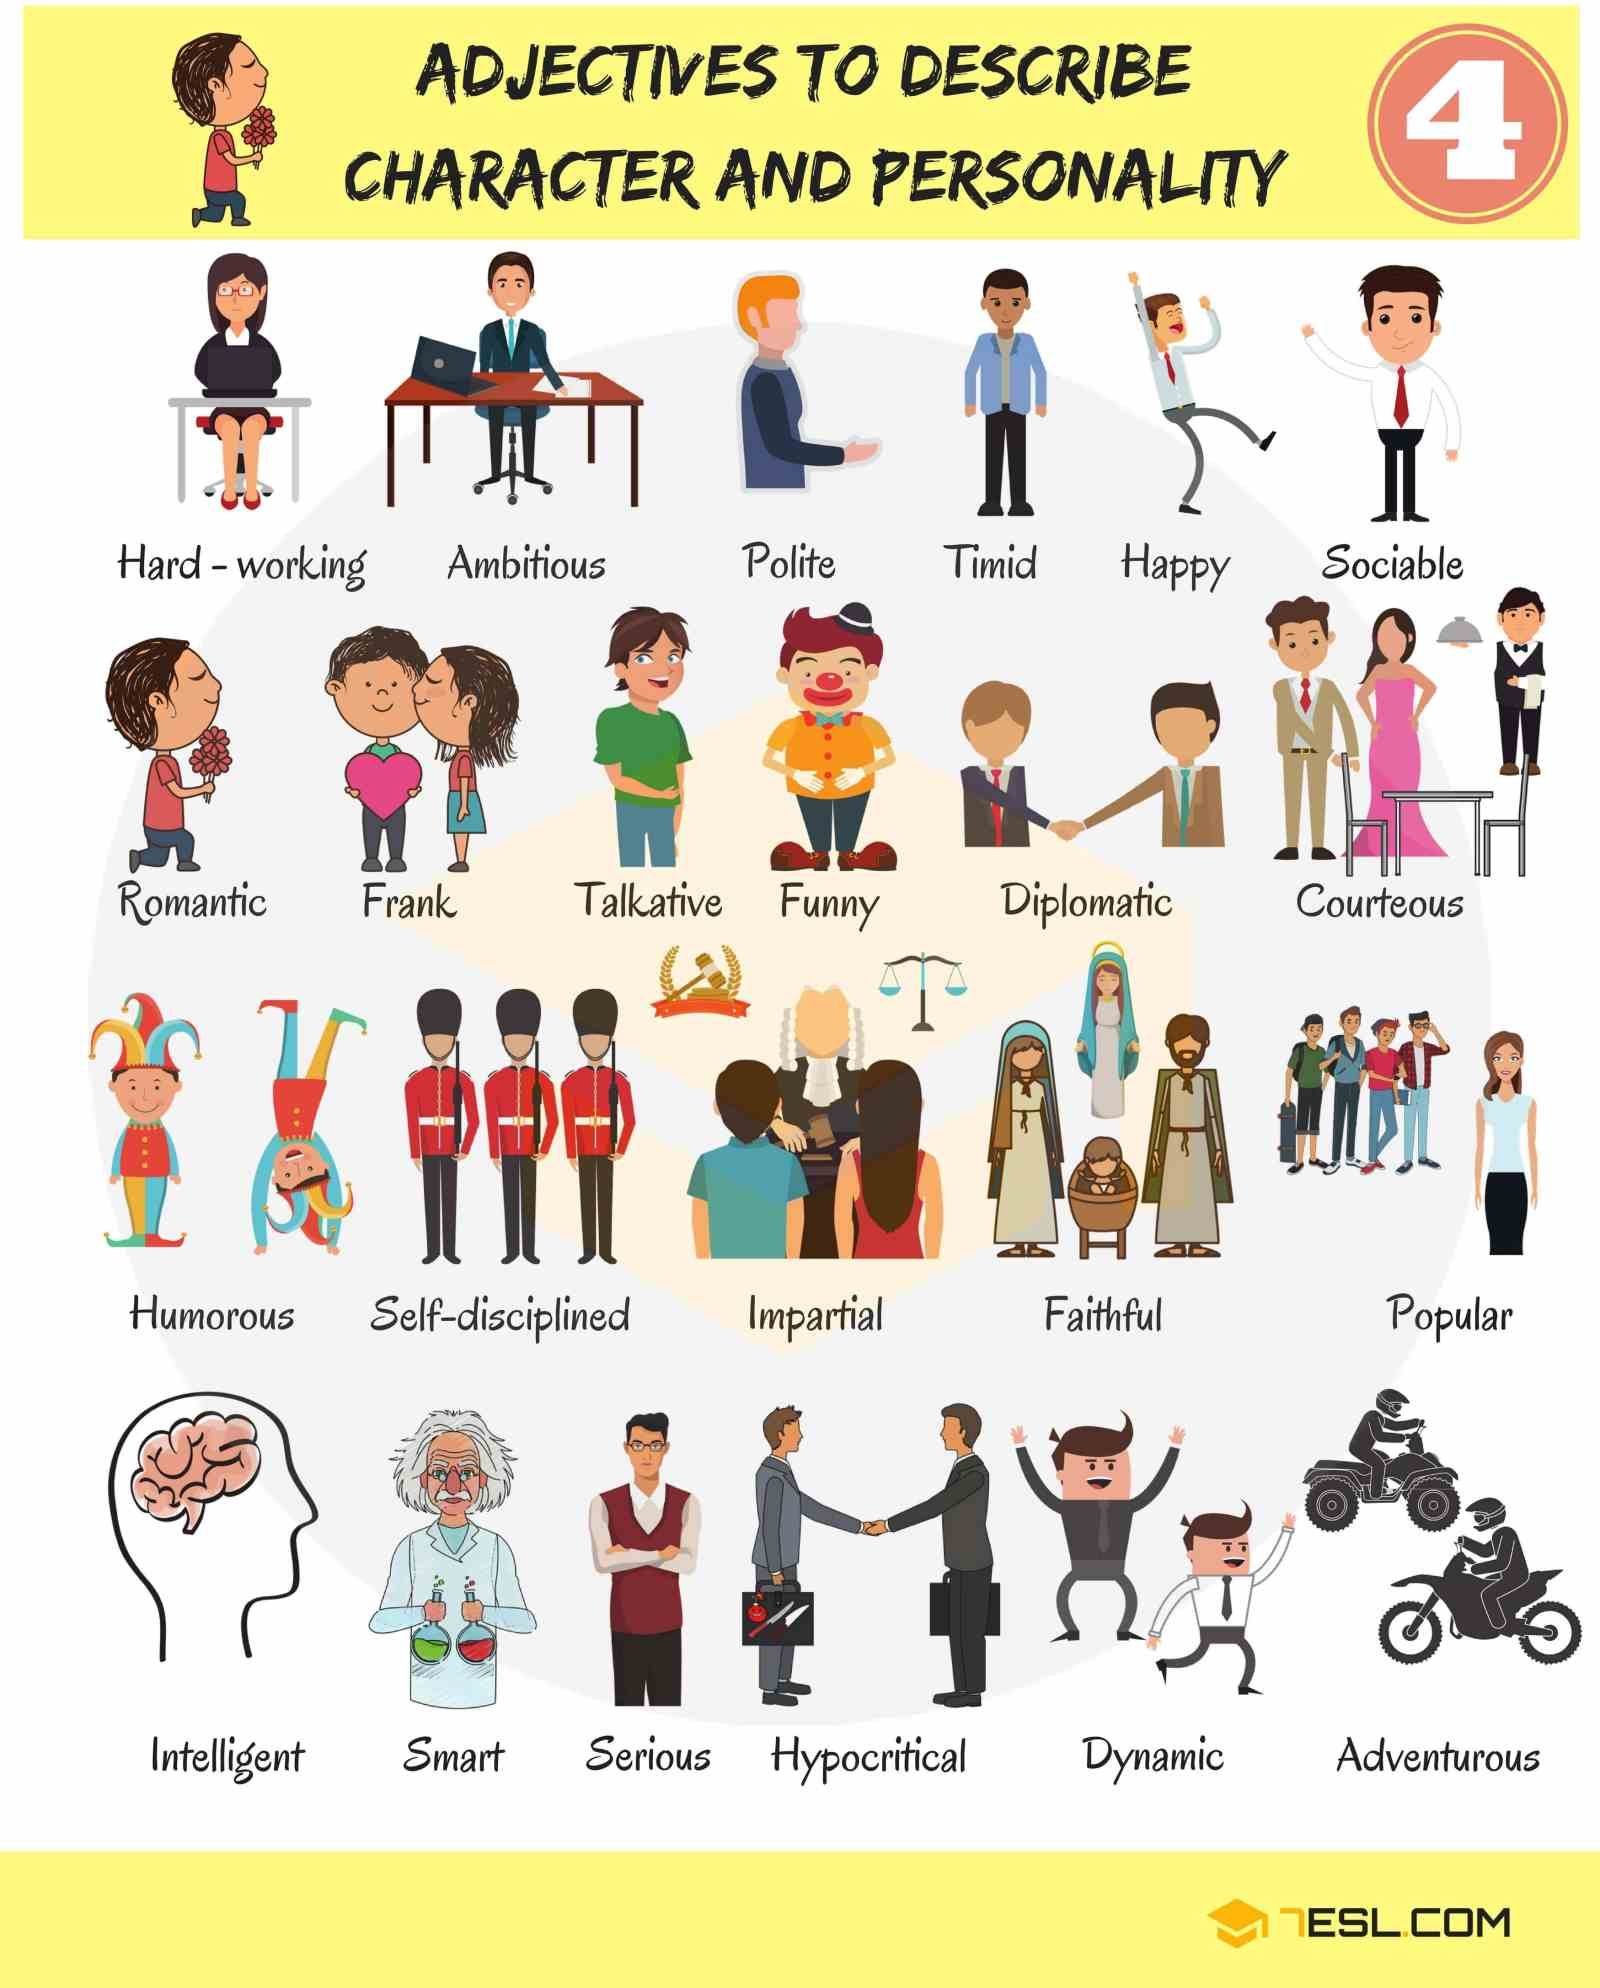 English Adjectives for Describing Character and Personality 16